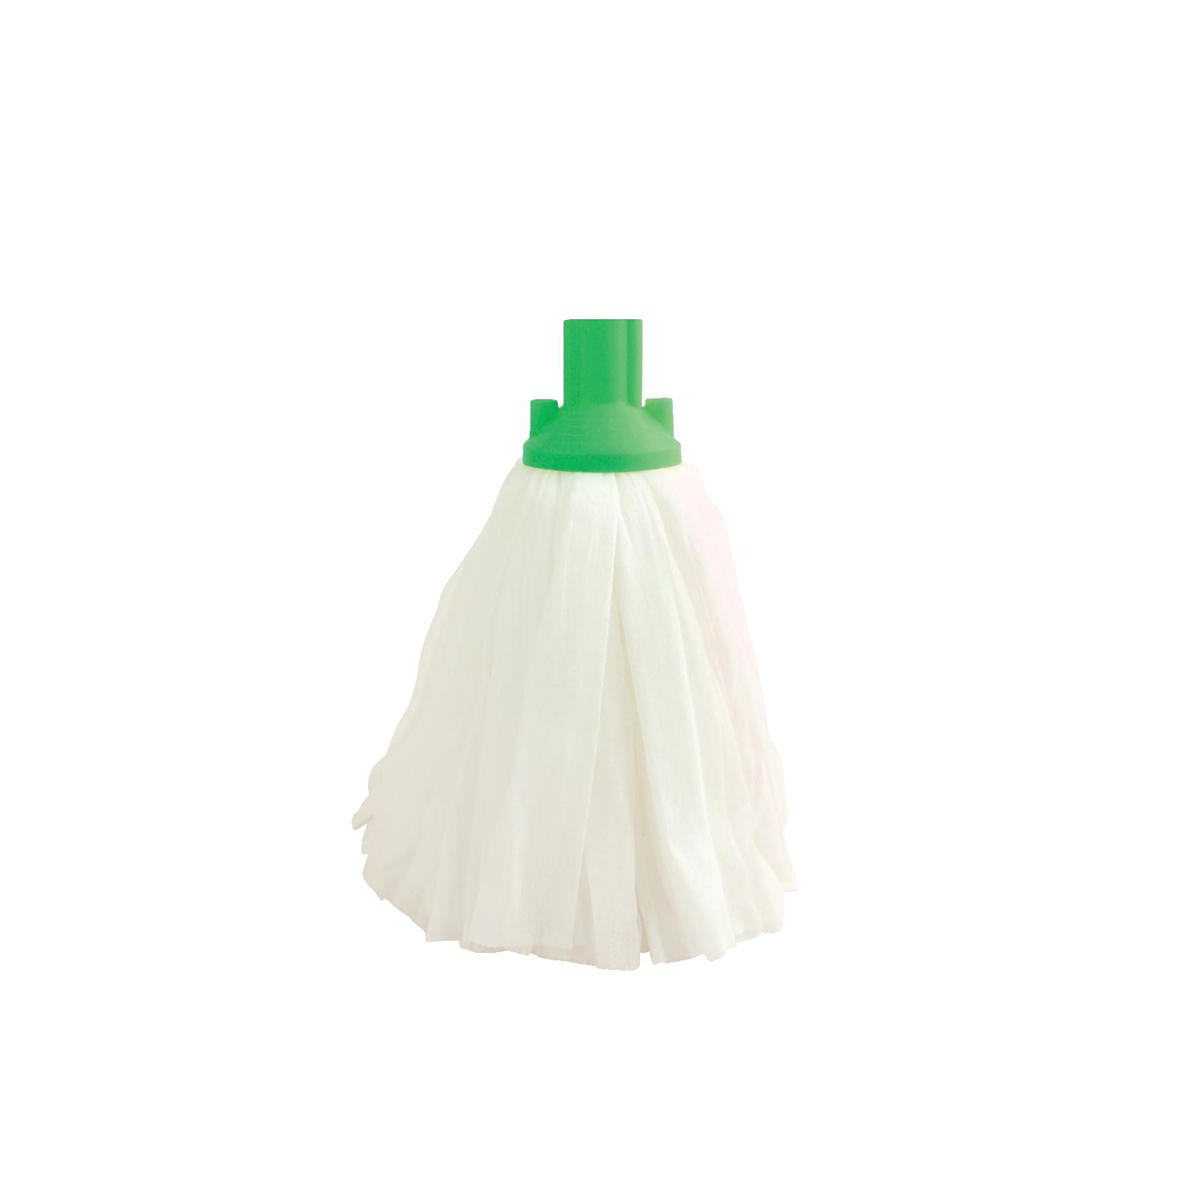 Image for Bentley Disposable Socket Mop Head 120g Green Ref SPC/DSM120/G